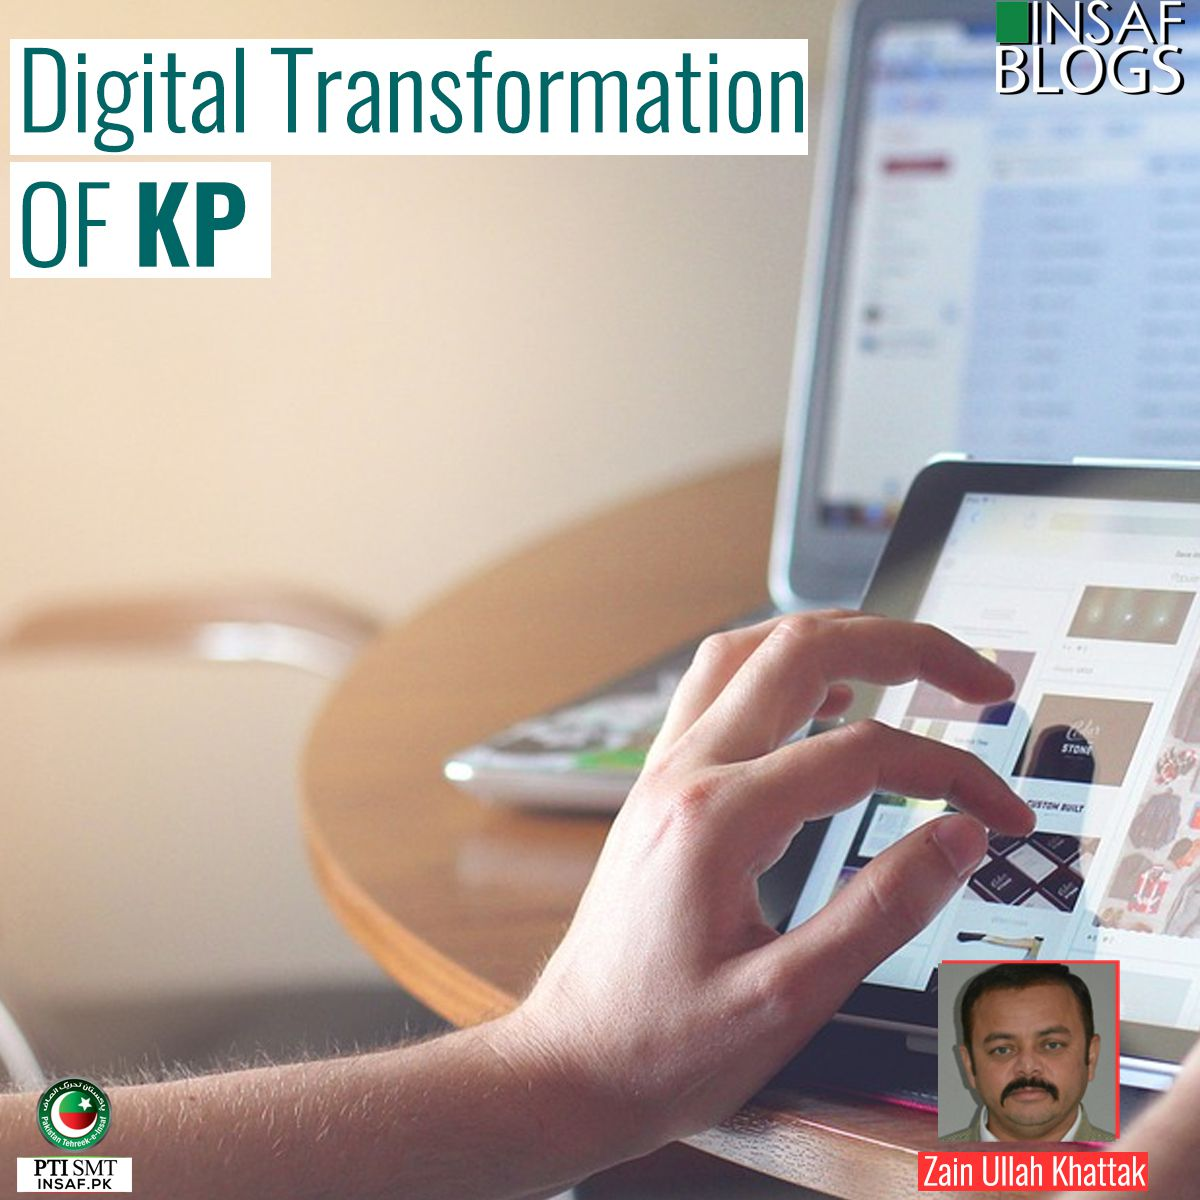 Digital Transformation OF KP - Insaf Blog